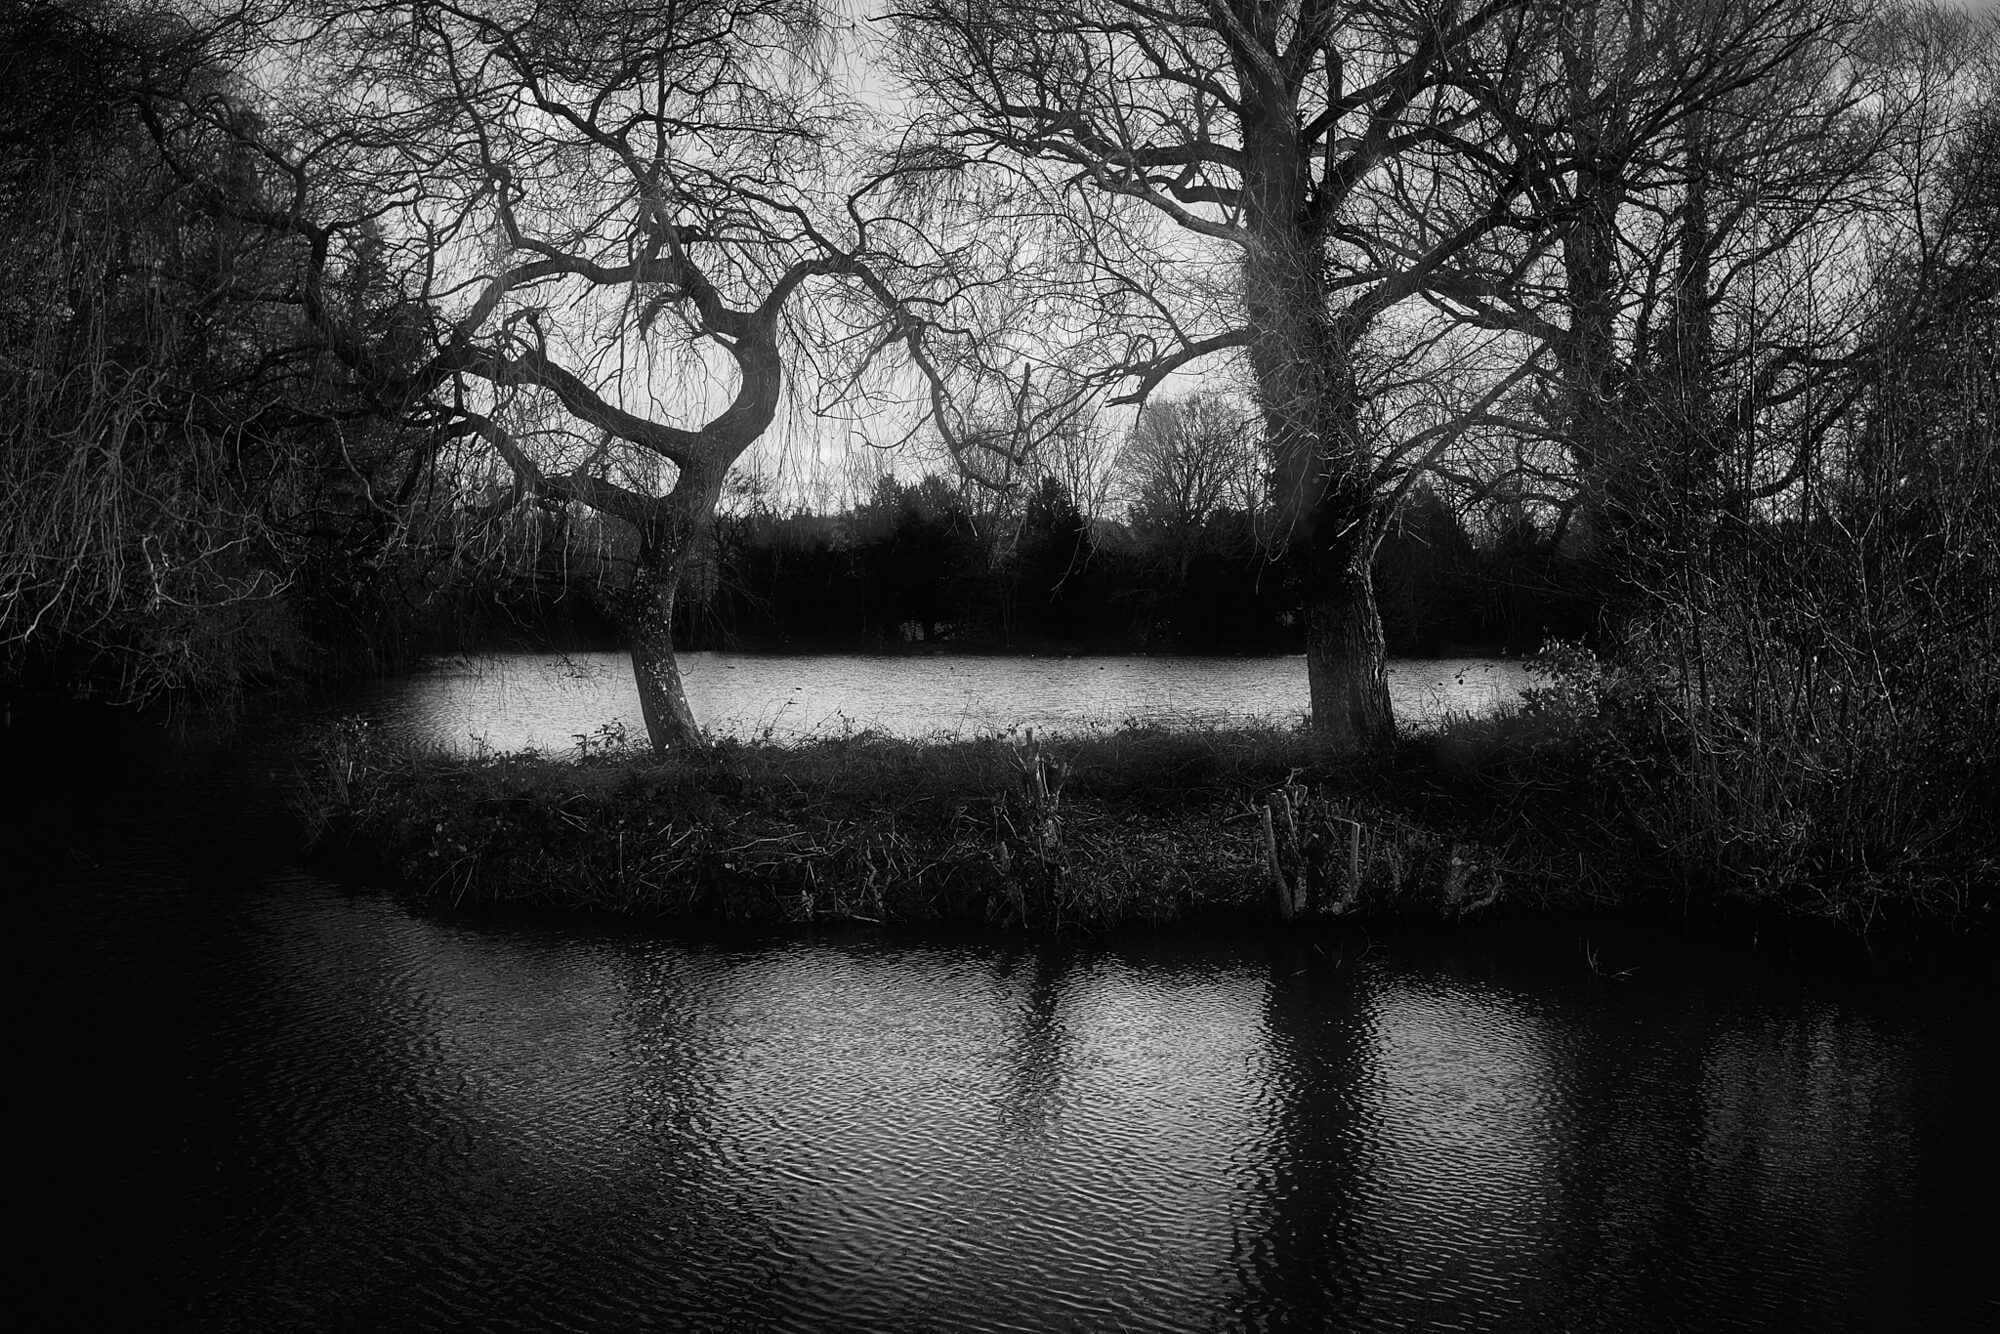 spooky reflection of trees and clouds and shadows on a lake in black and white